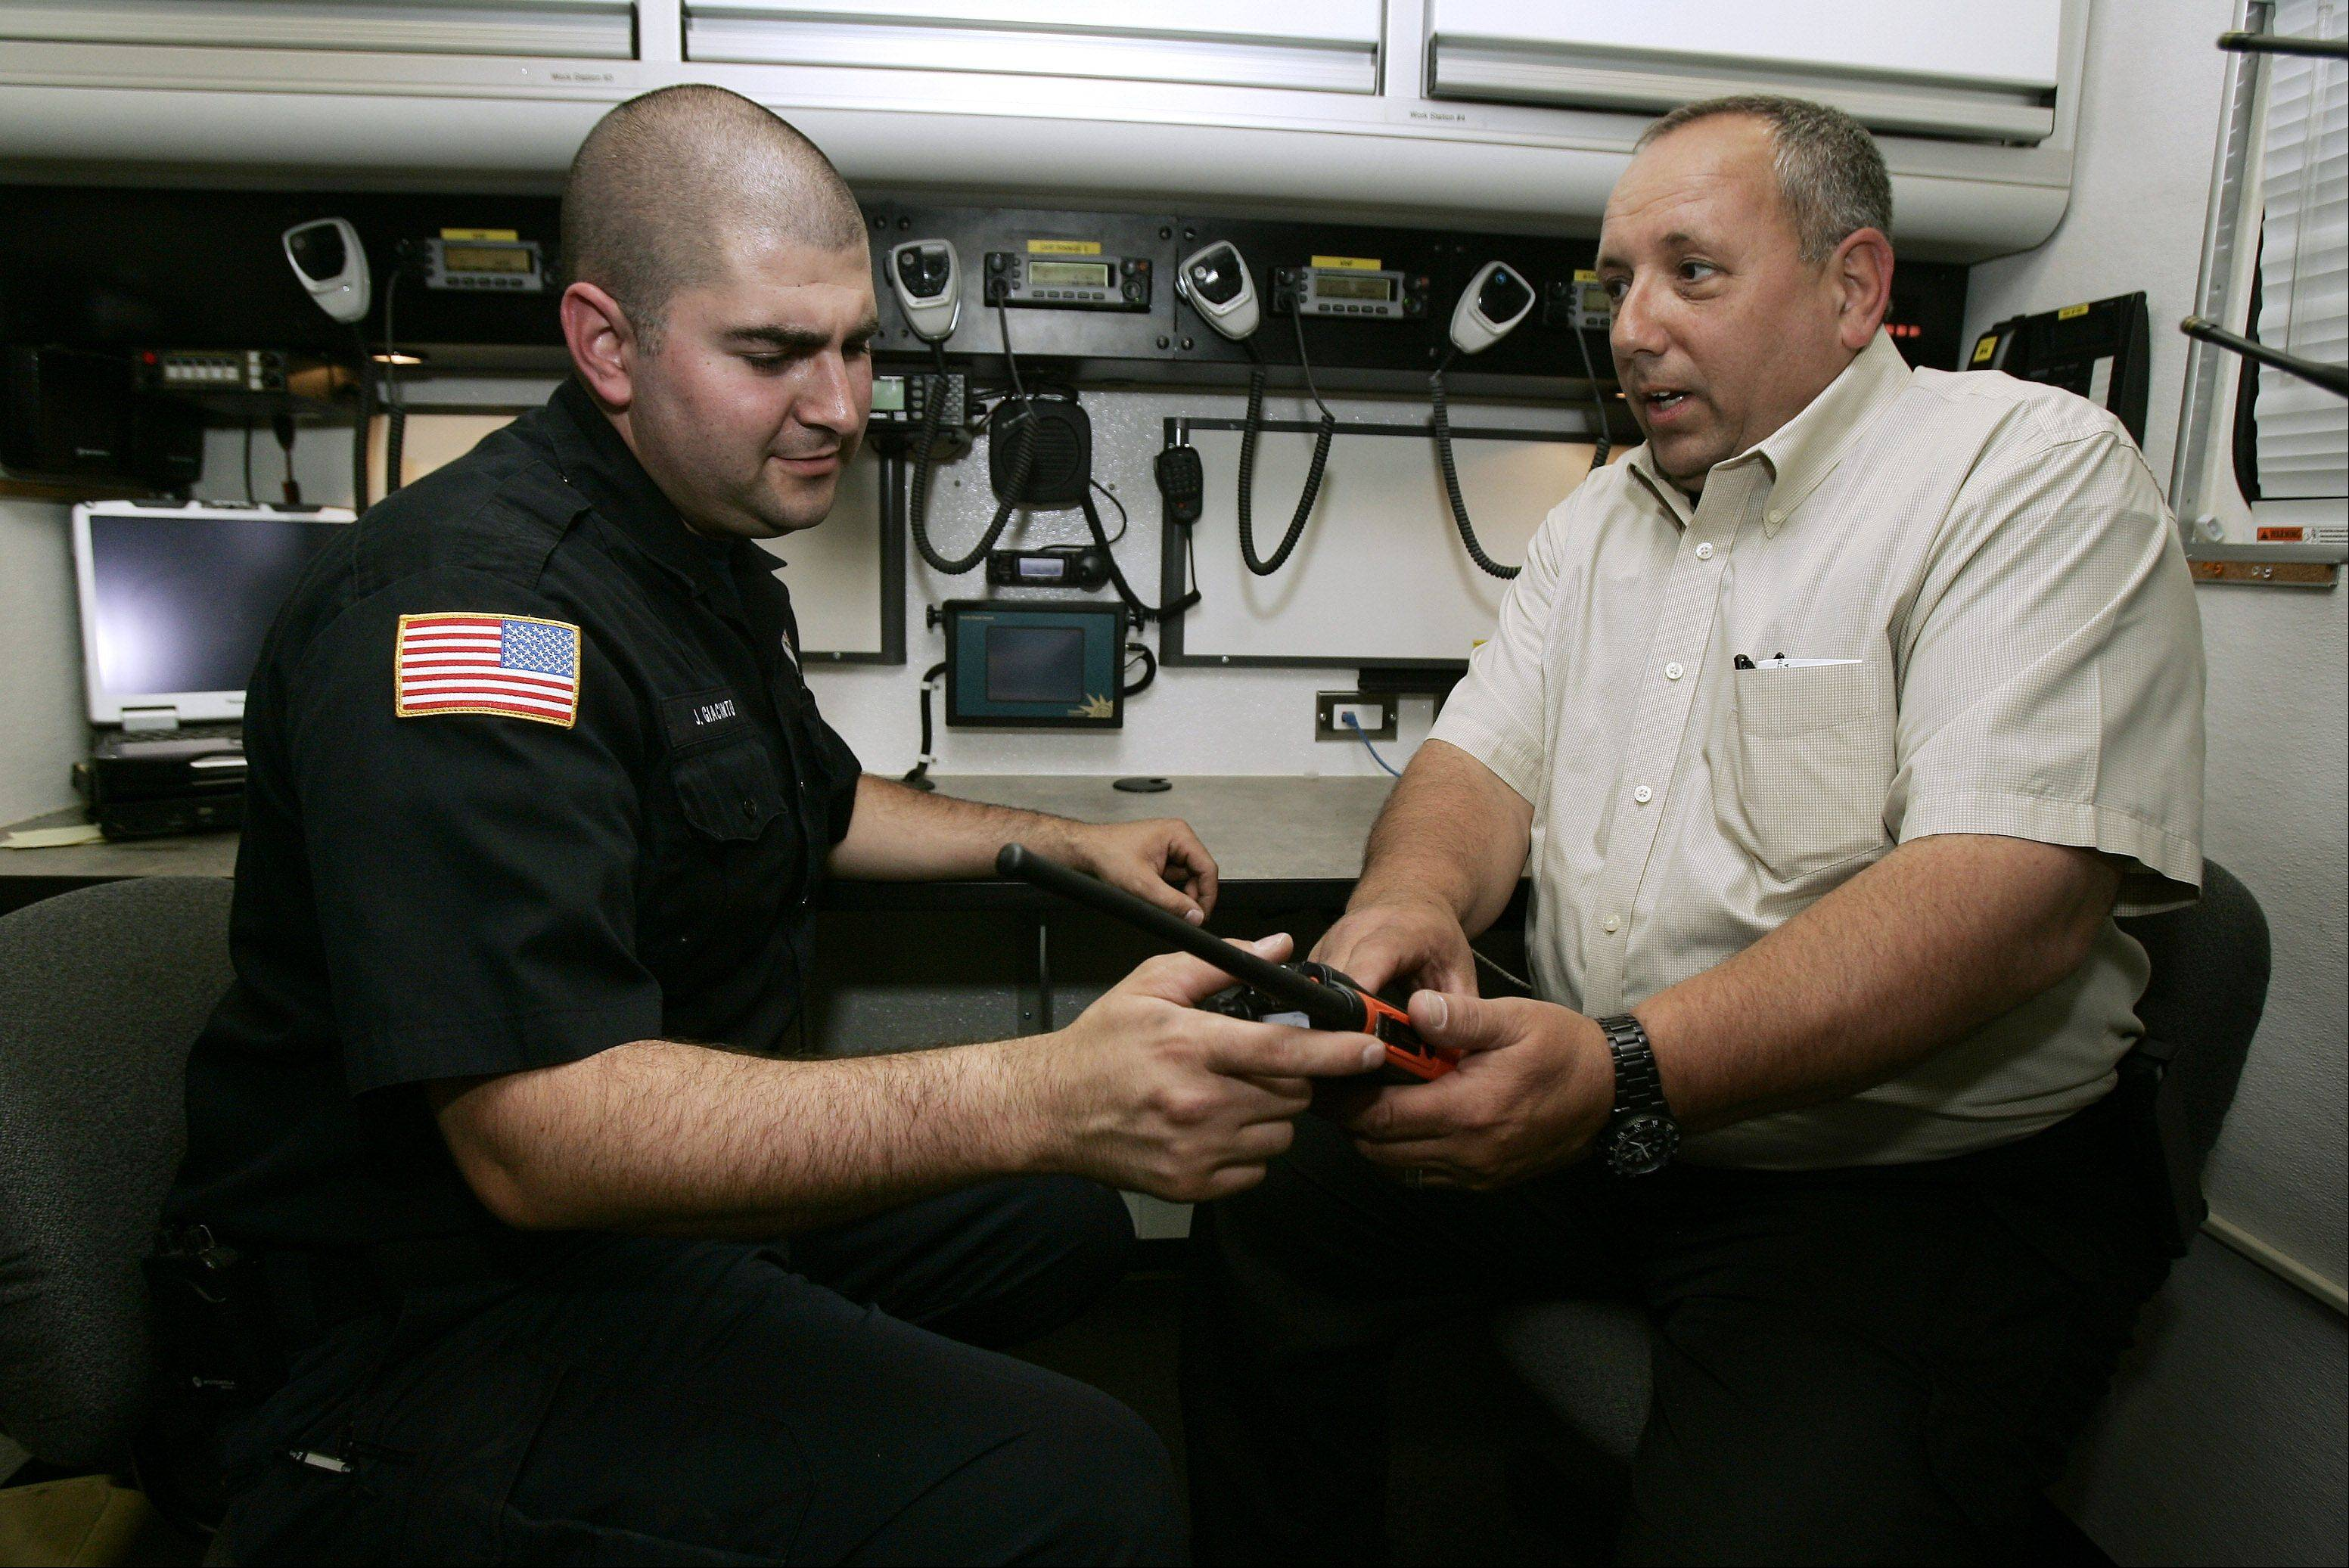 Wauconda Fire Department Chief Dave Dato, right, and Jeff Giacinto, command unit leader, explains the equipment in the Unified Command Post, an emergency mobile communications van, housed at the Volo fire substation.